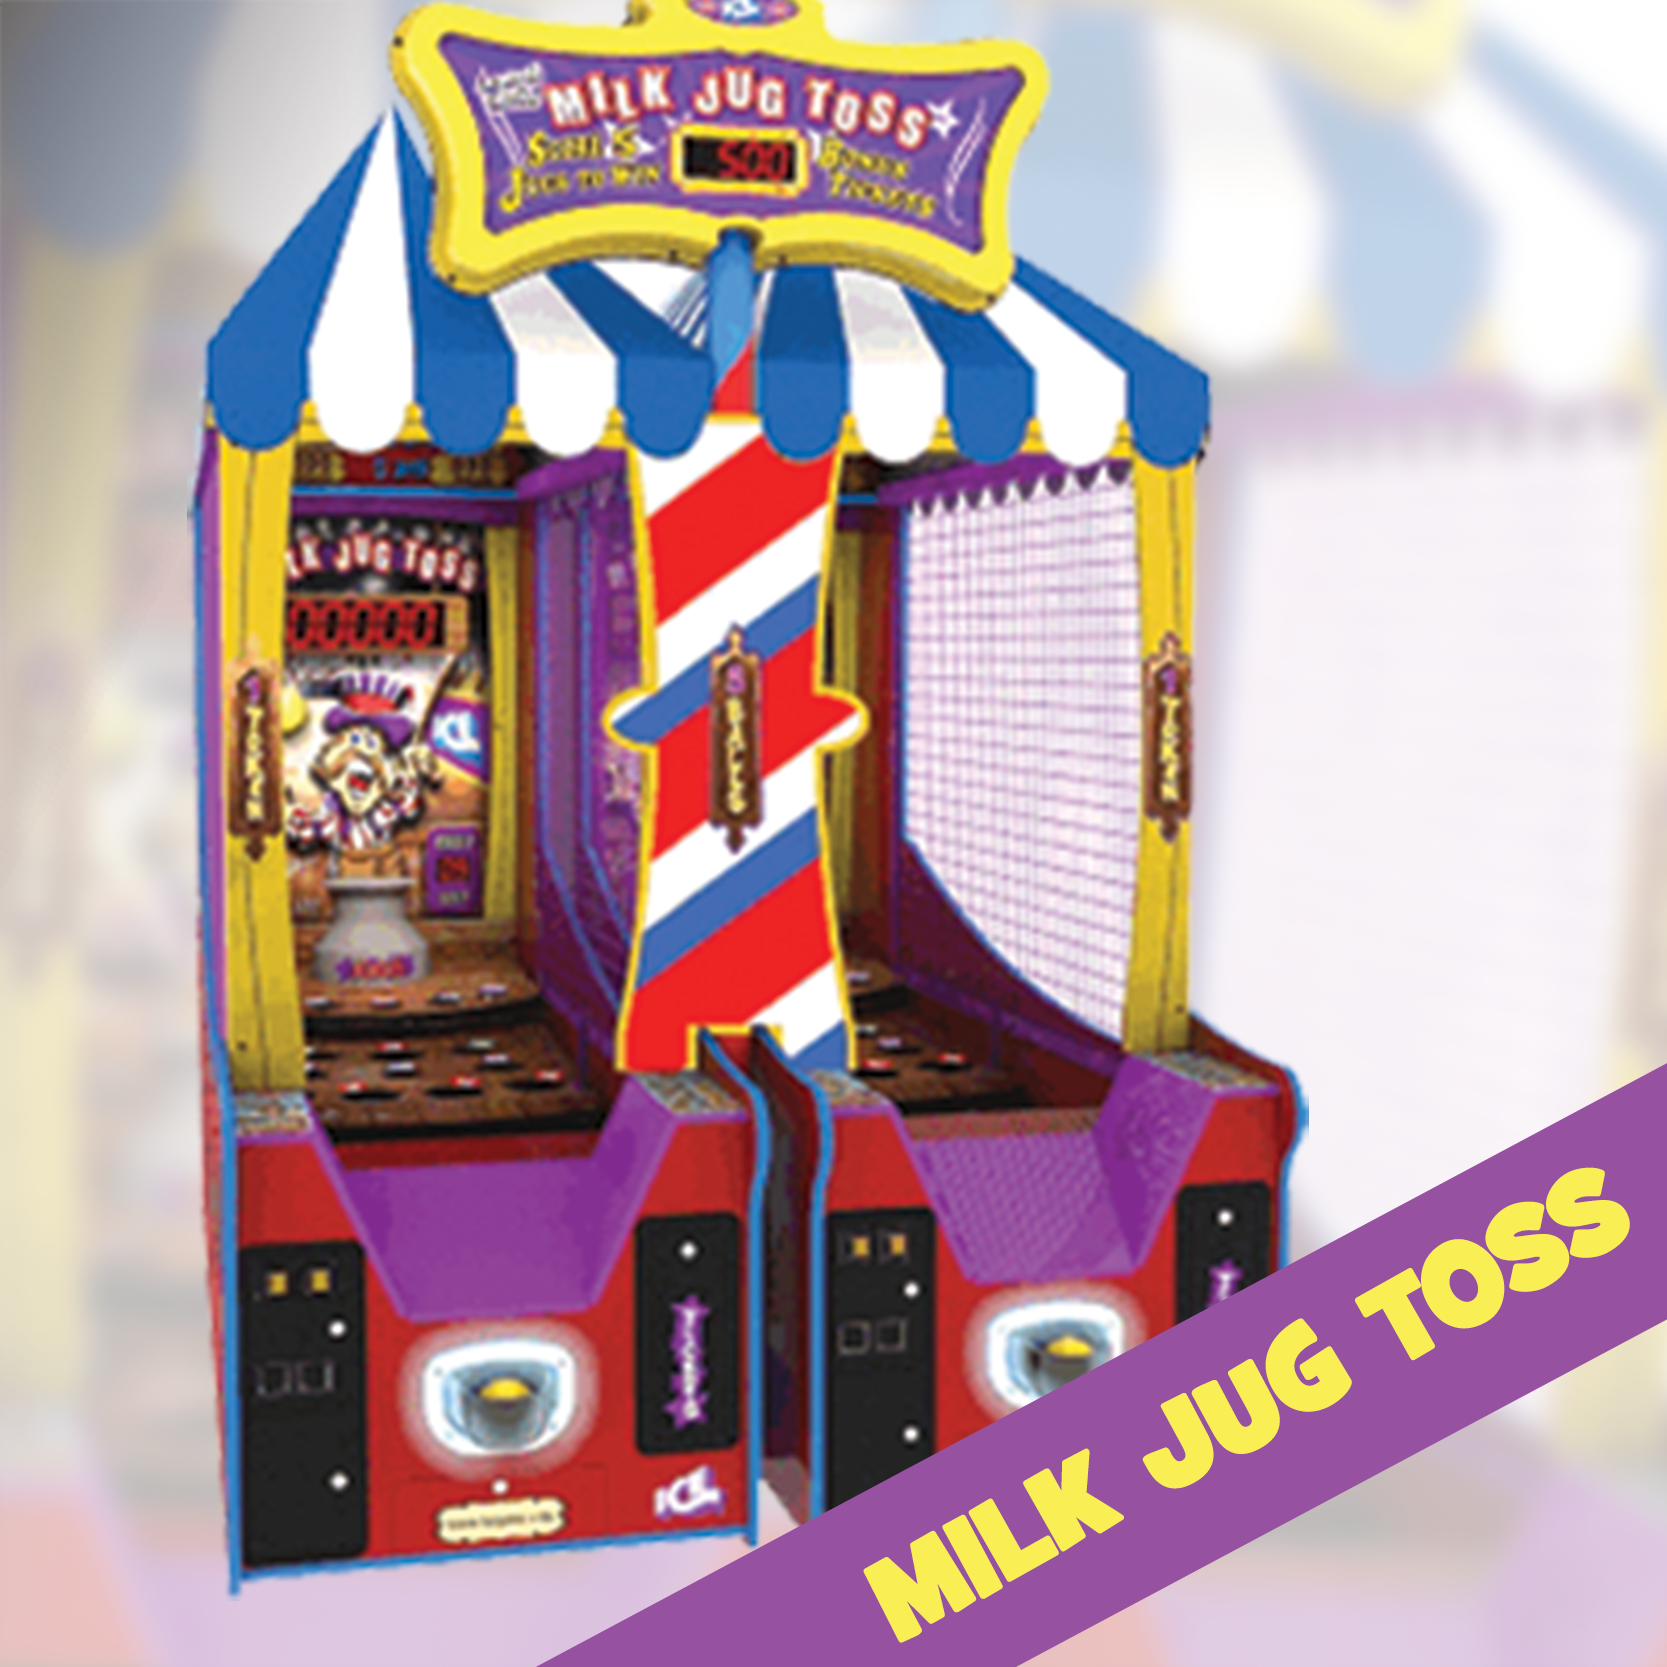 STEP RIGHT UP! Enjoy this CLASSIC carnival style game and toss to win! Land your ball in the milk jug and win higher points. SOUNDS EASY RIGHT? Think again - come down and give it a shot.